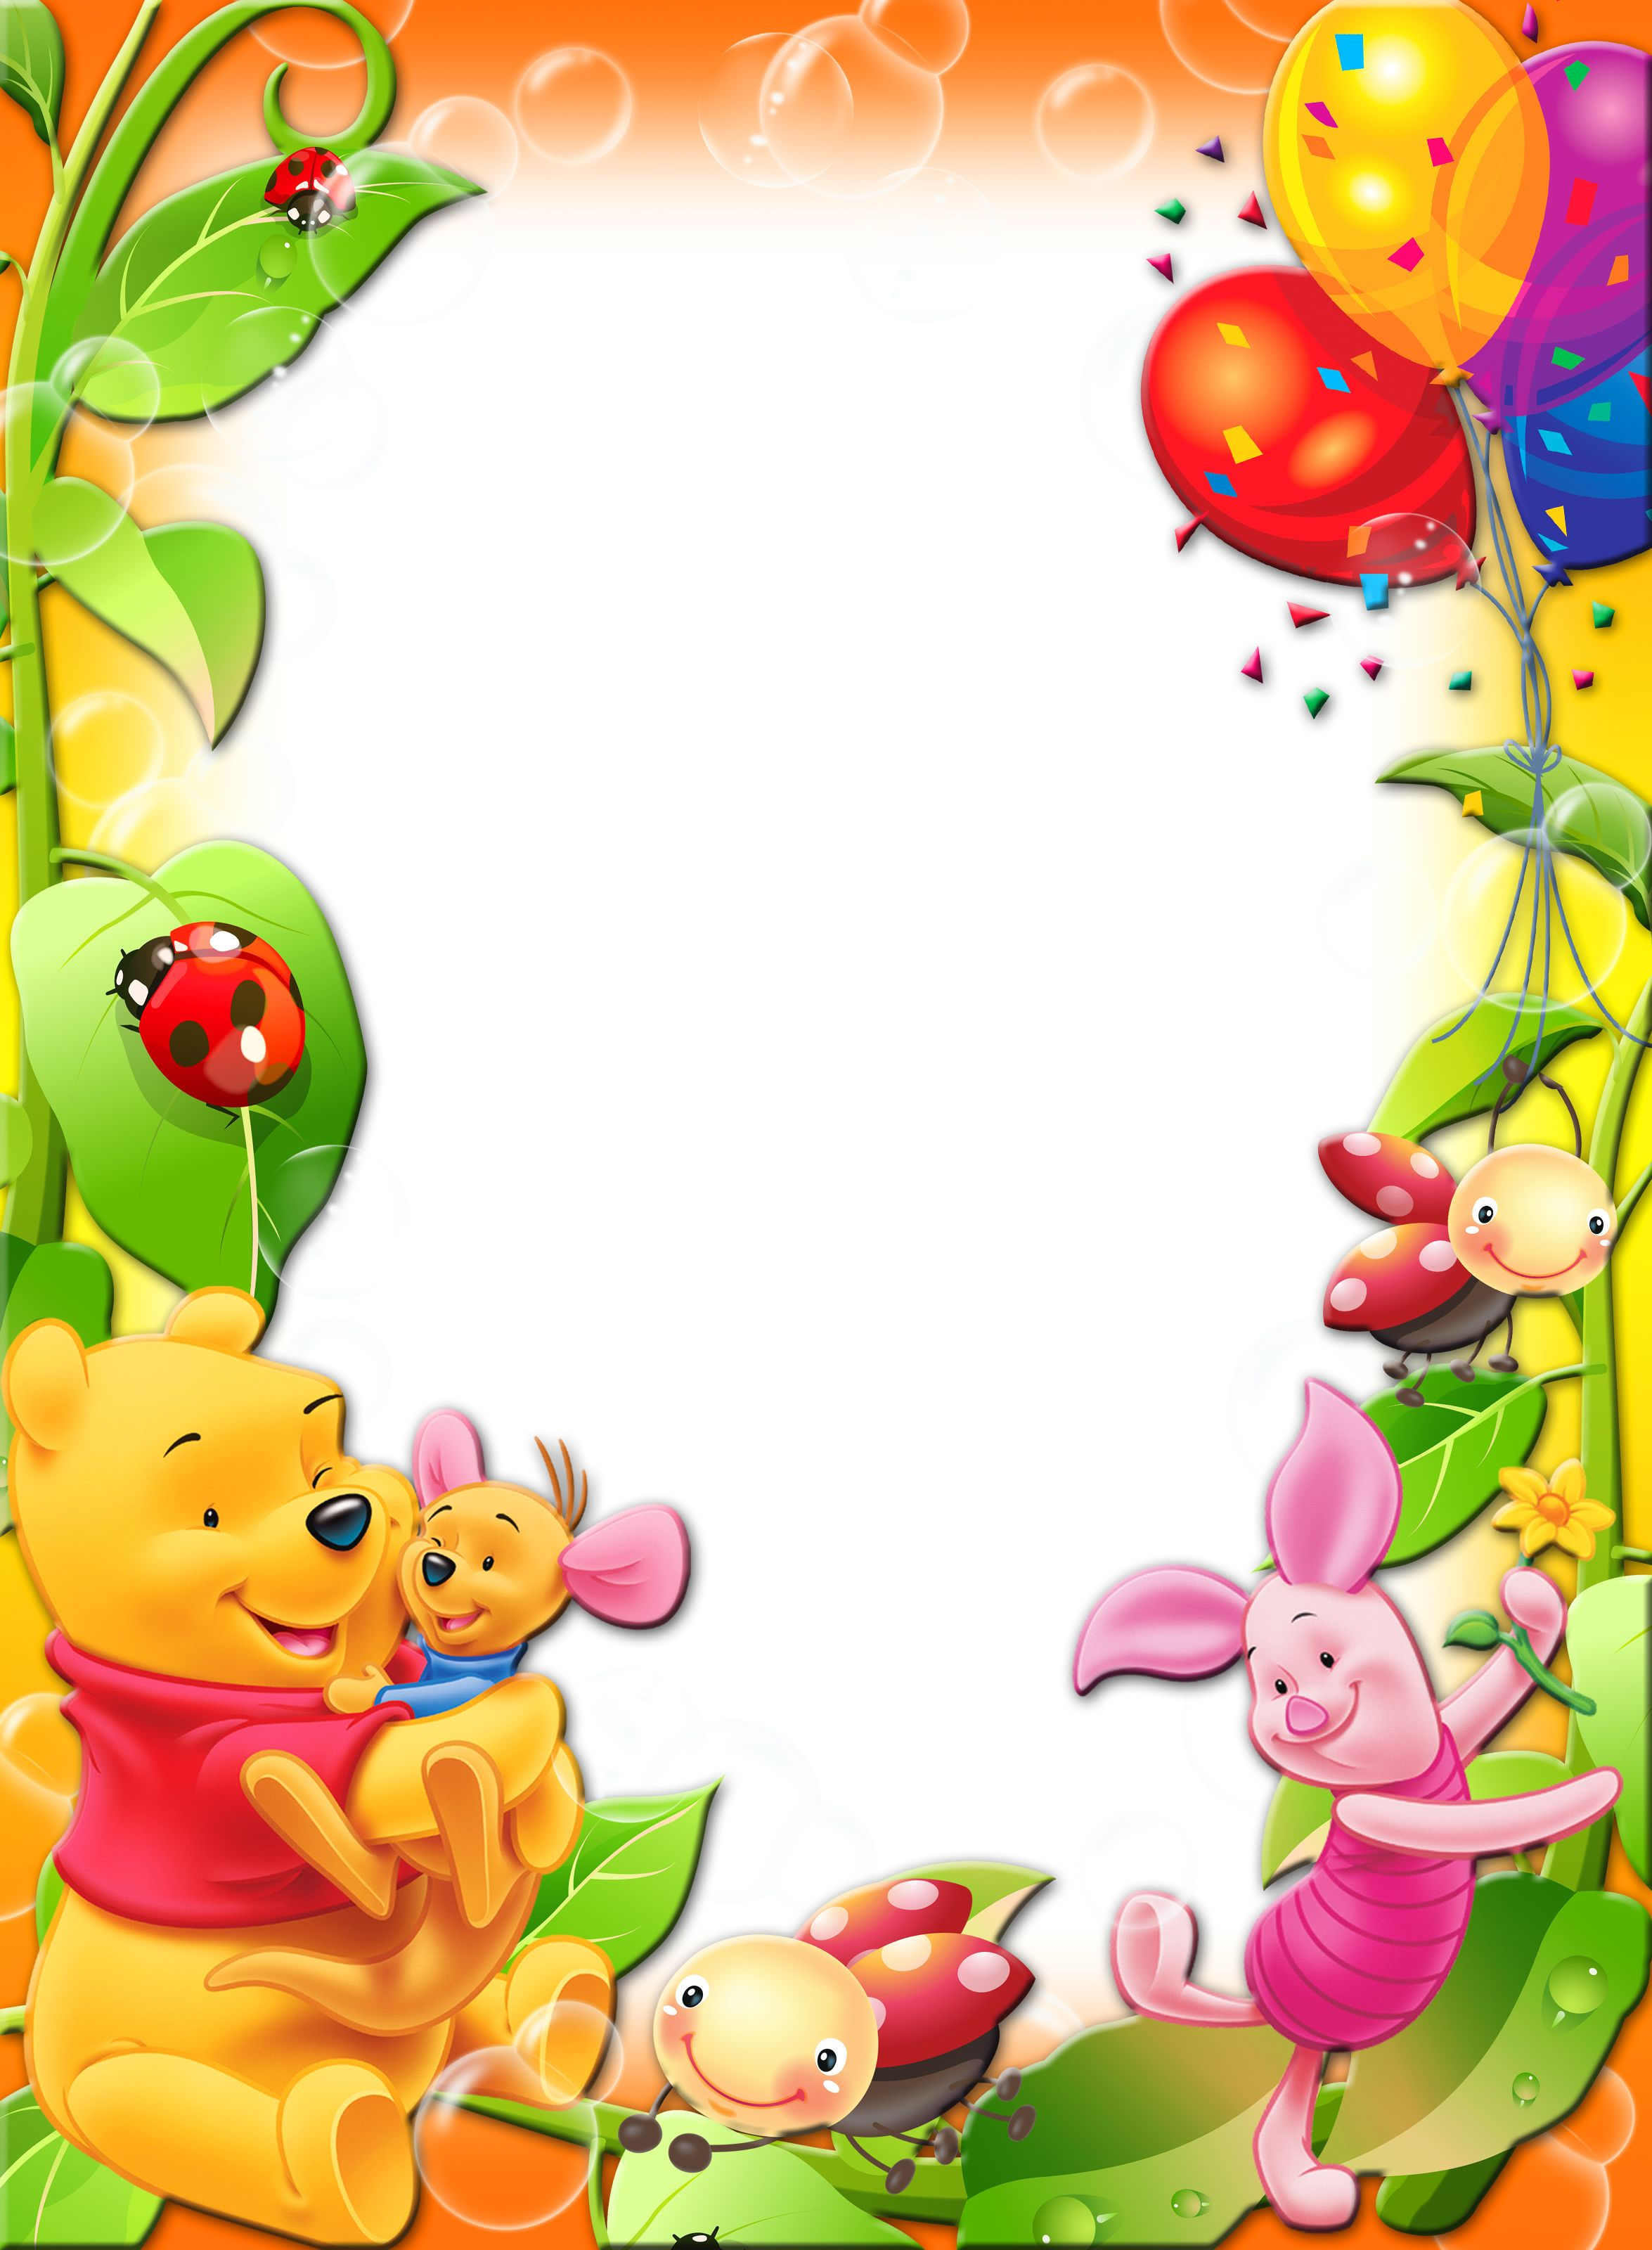 Happy Birthday Rudransh Rudransh Png Photo Winnie The Pooh Frame